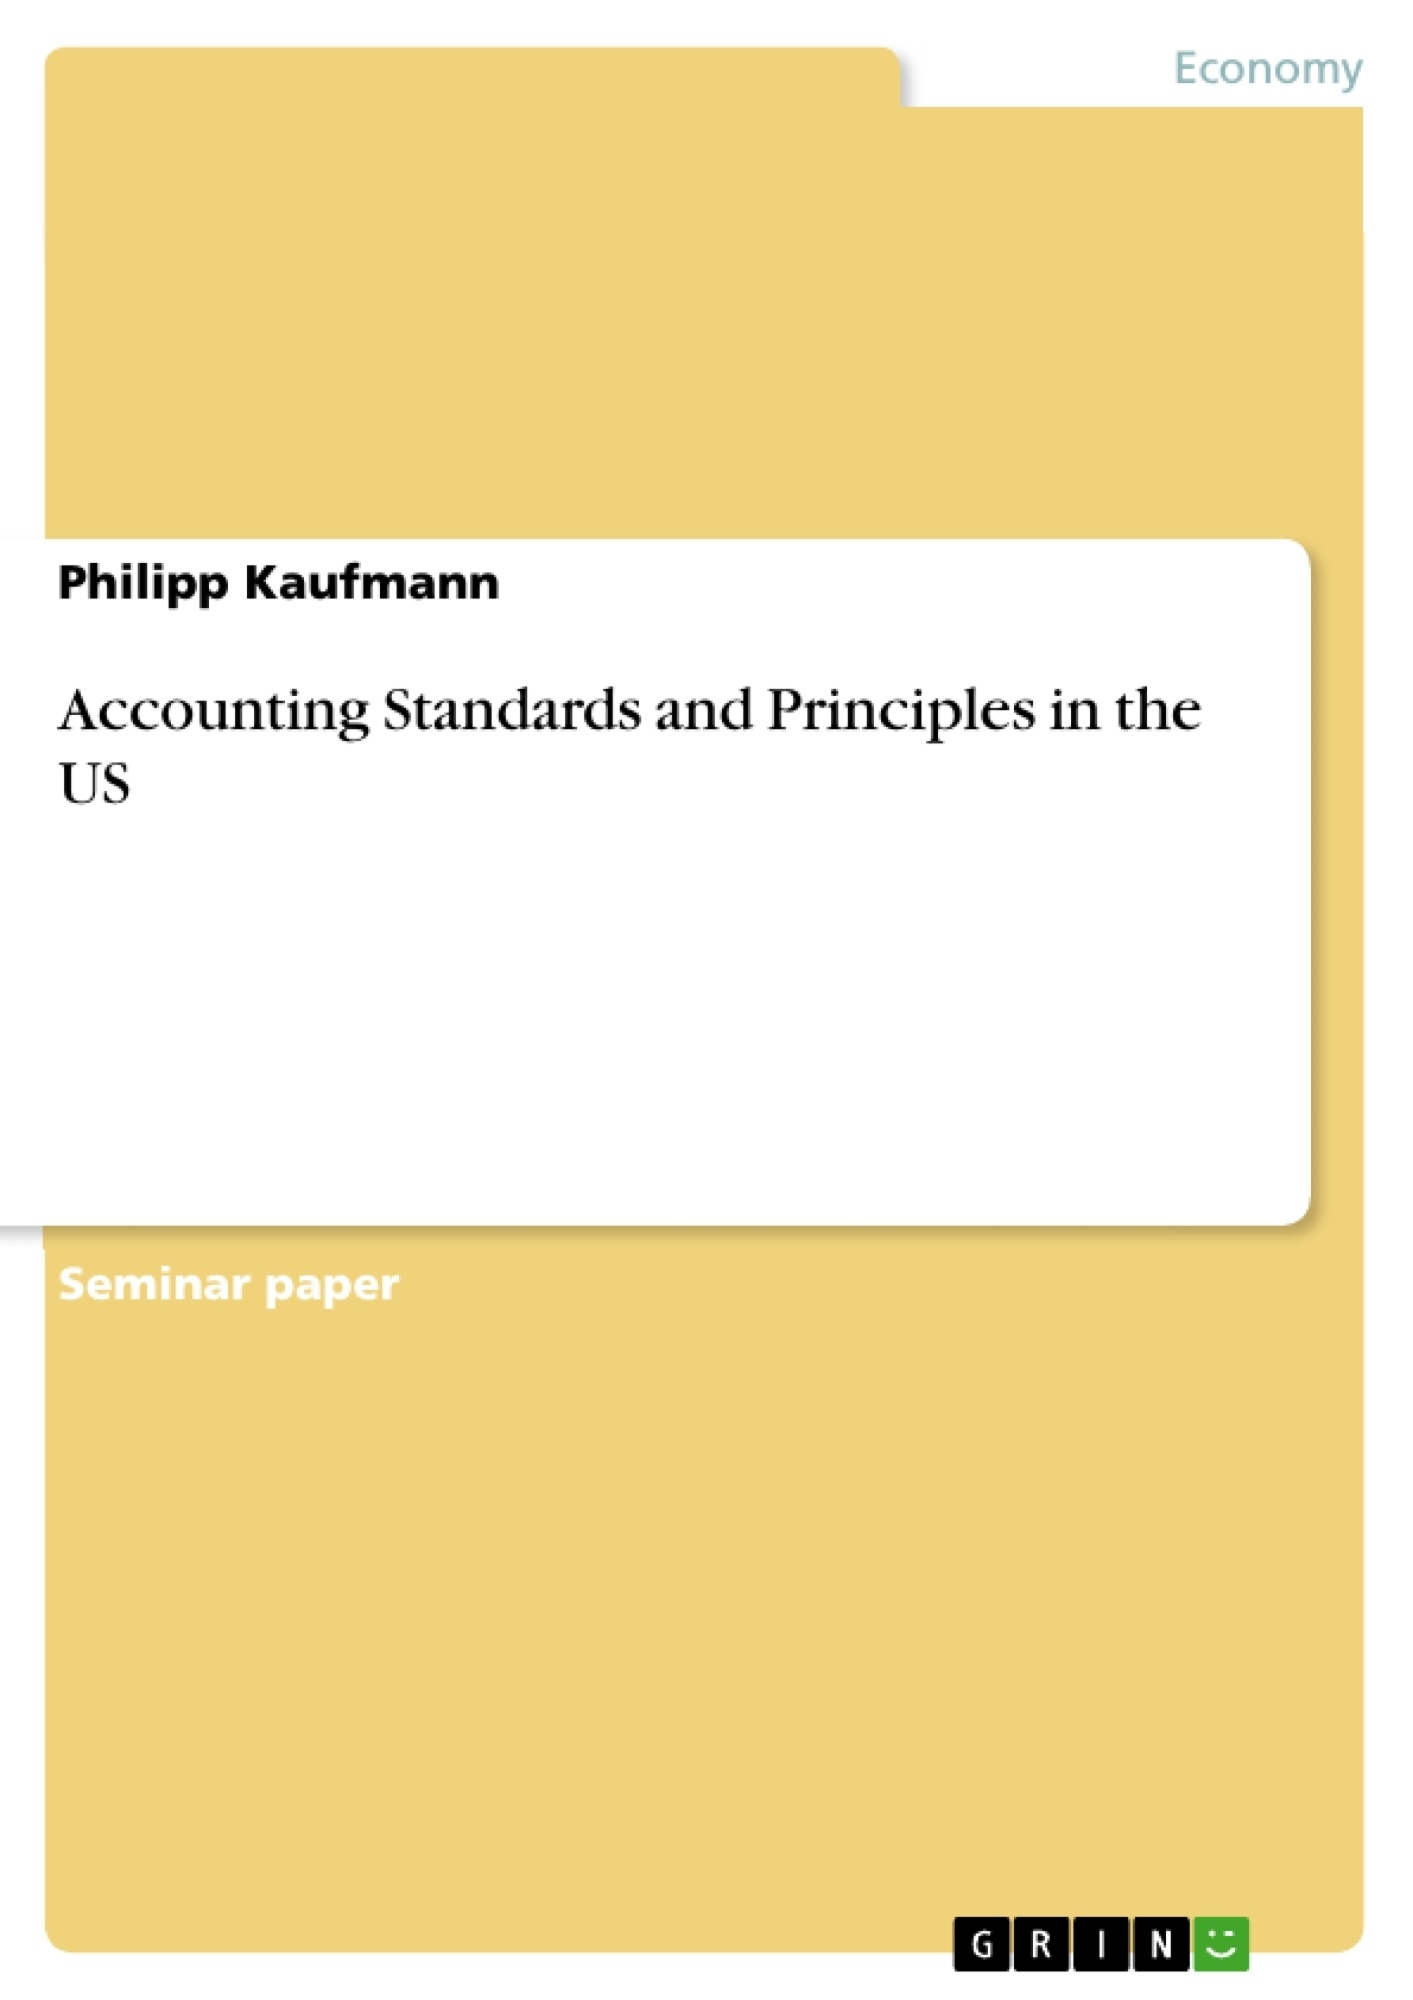 Title: Accounting Standards and Principles in the US